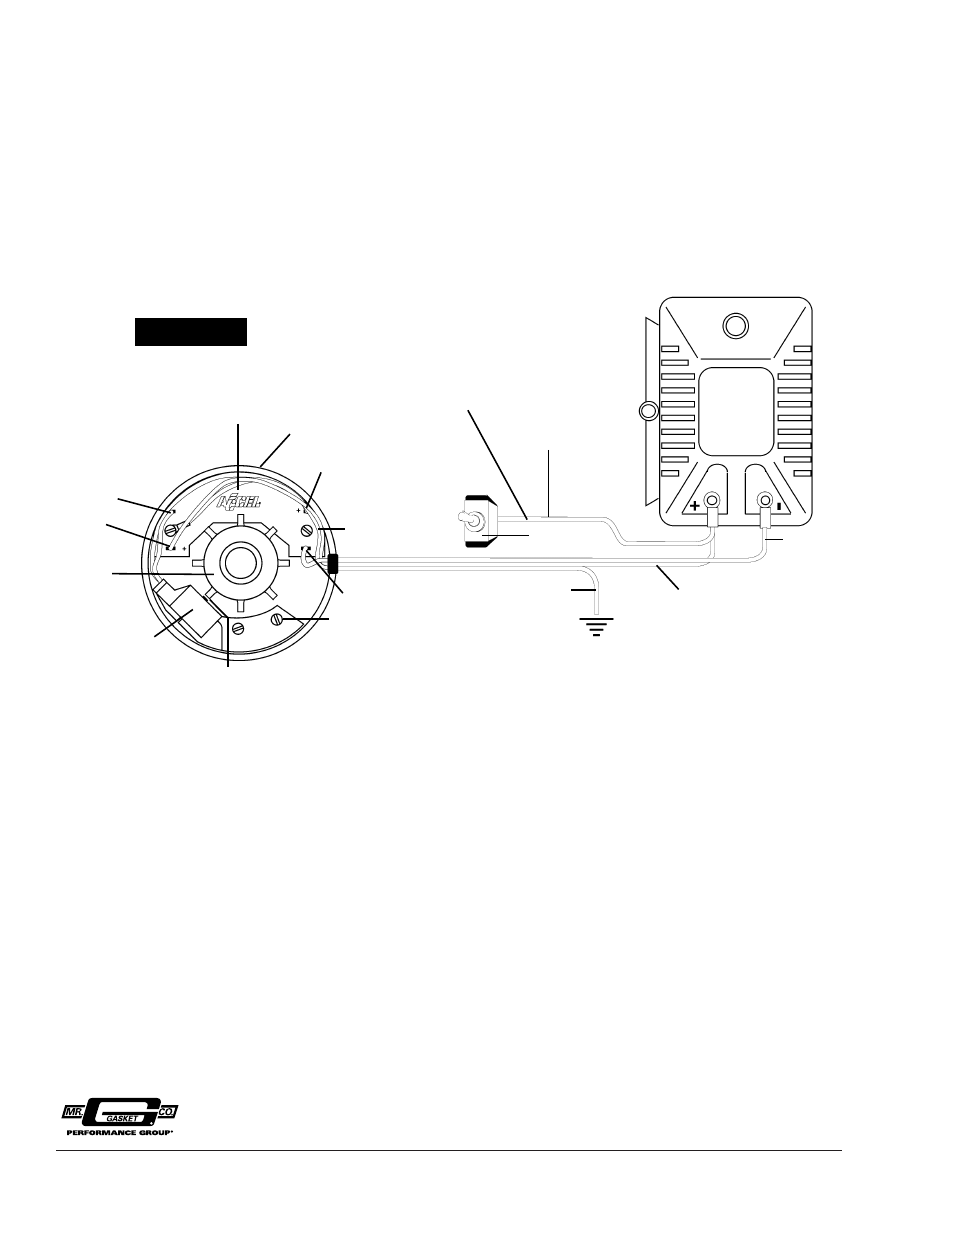 mallory ignition accel magnetic breakerless distributors 71000 page2?resize\\\=665%2C861 diagrams 16752175 accel distributor wiring diagram msd ignition accel street billet distributor wiring diagram at soozxer.org